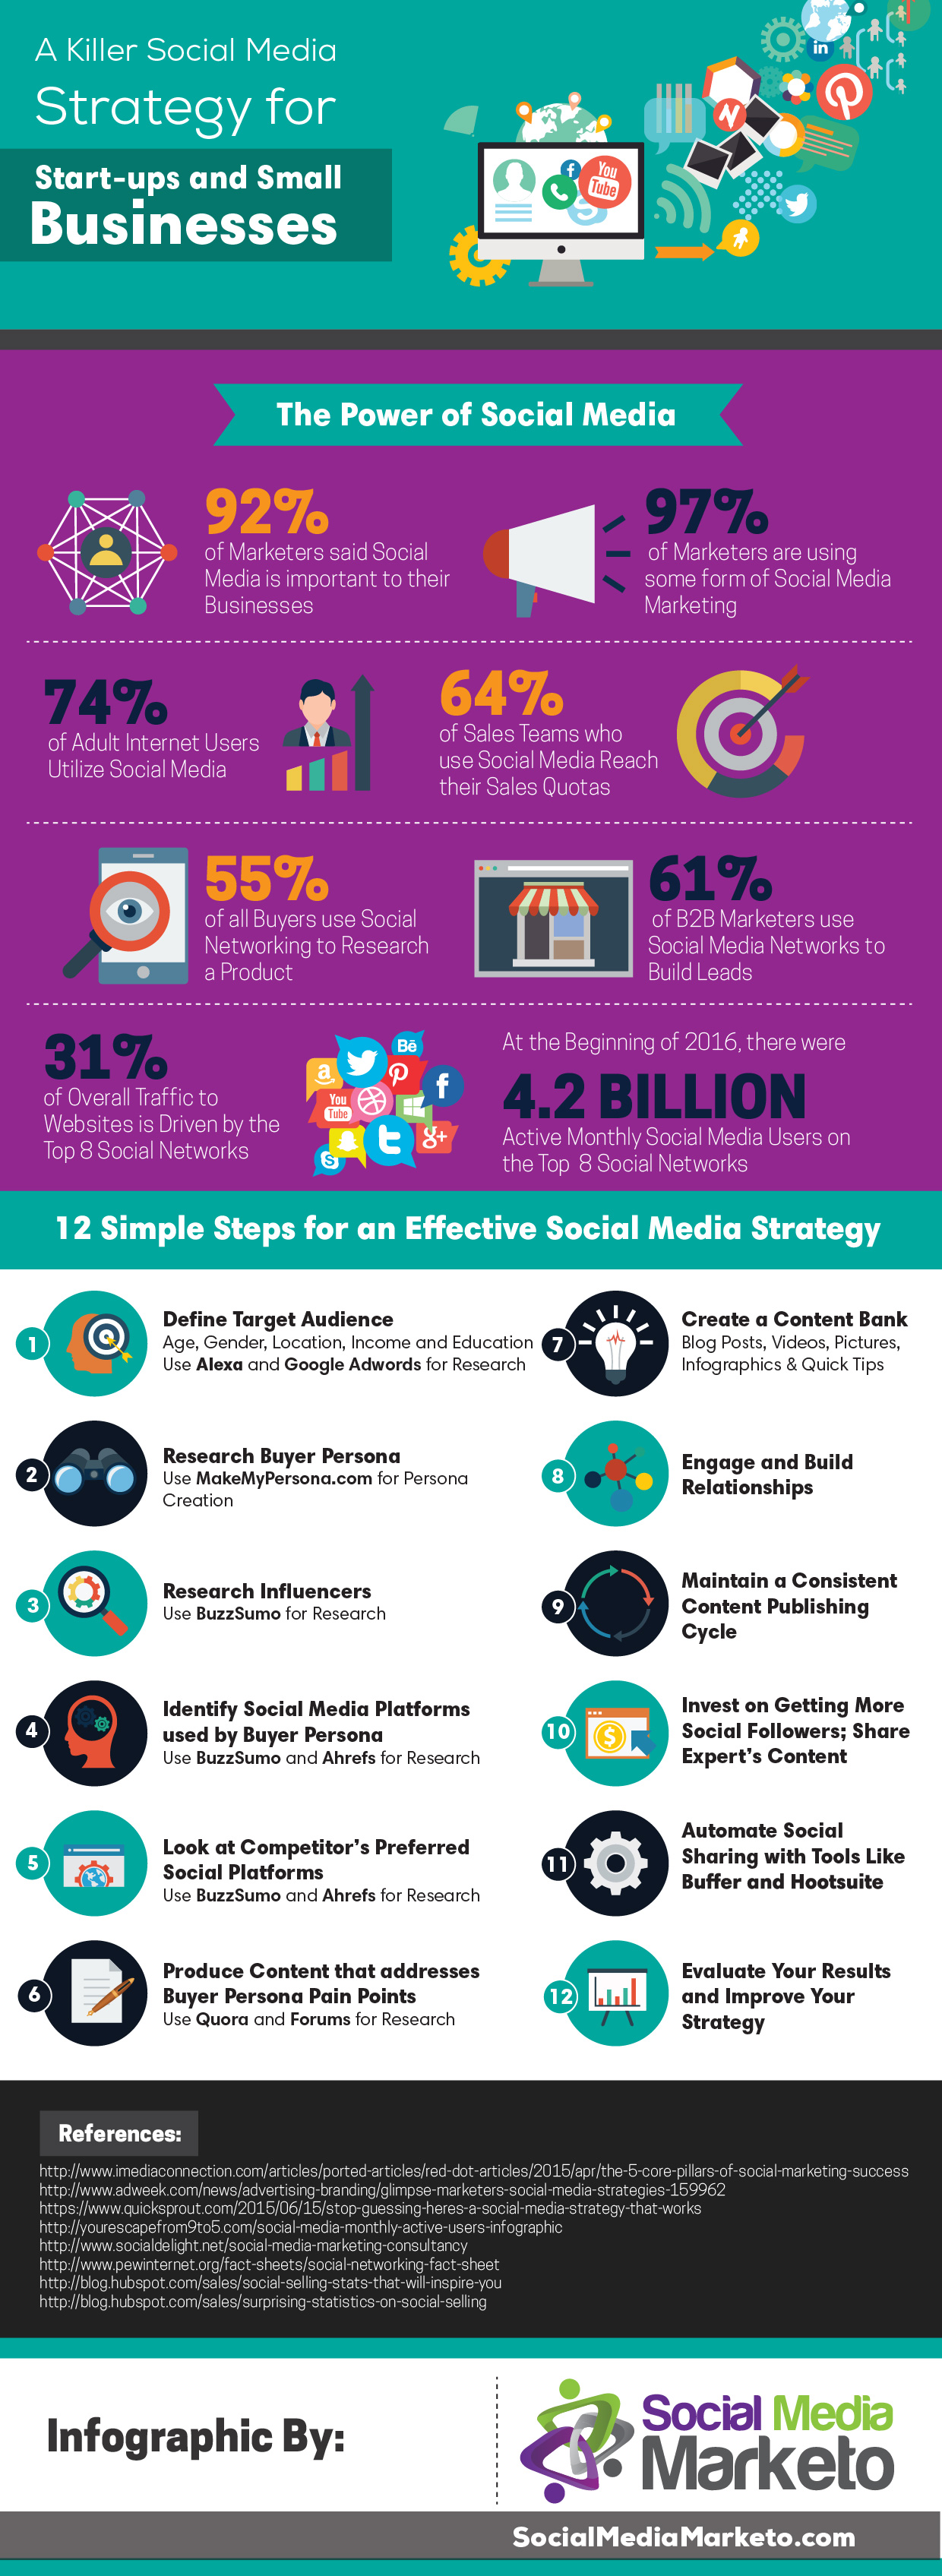 A Killer Social Media Marketing Strategy Infographic